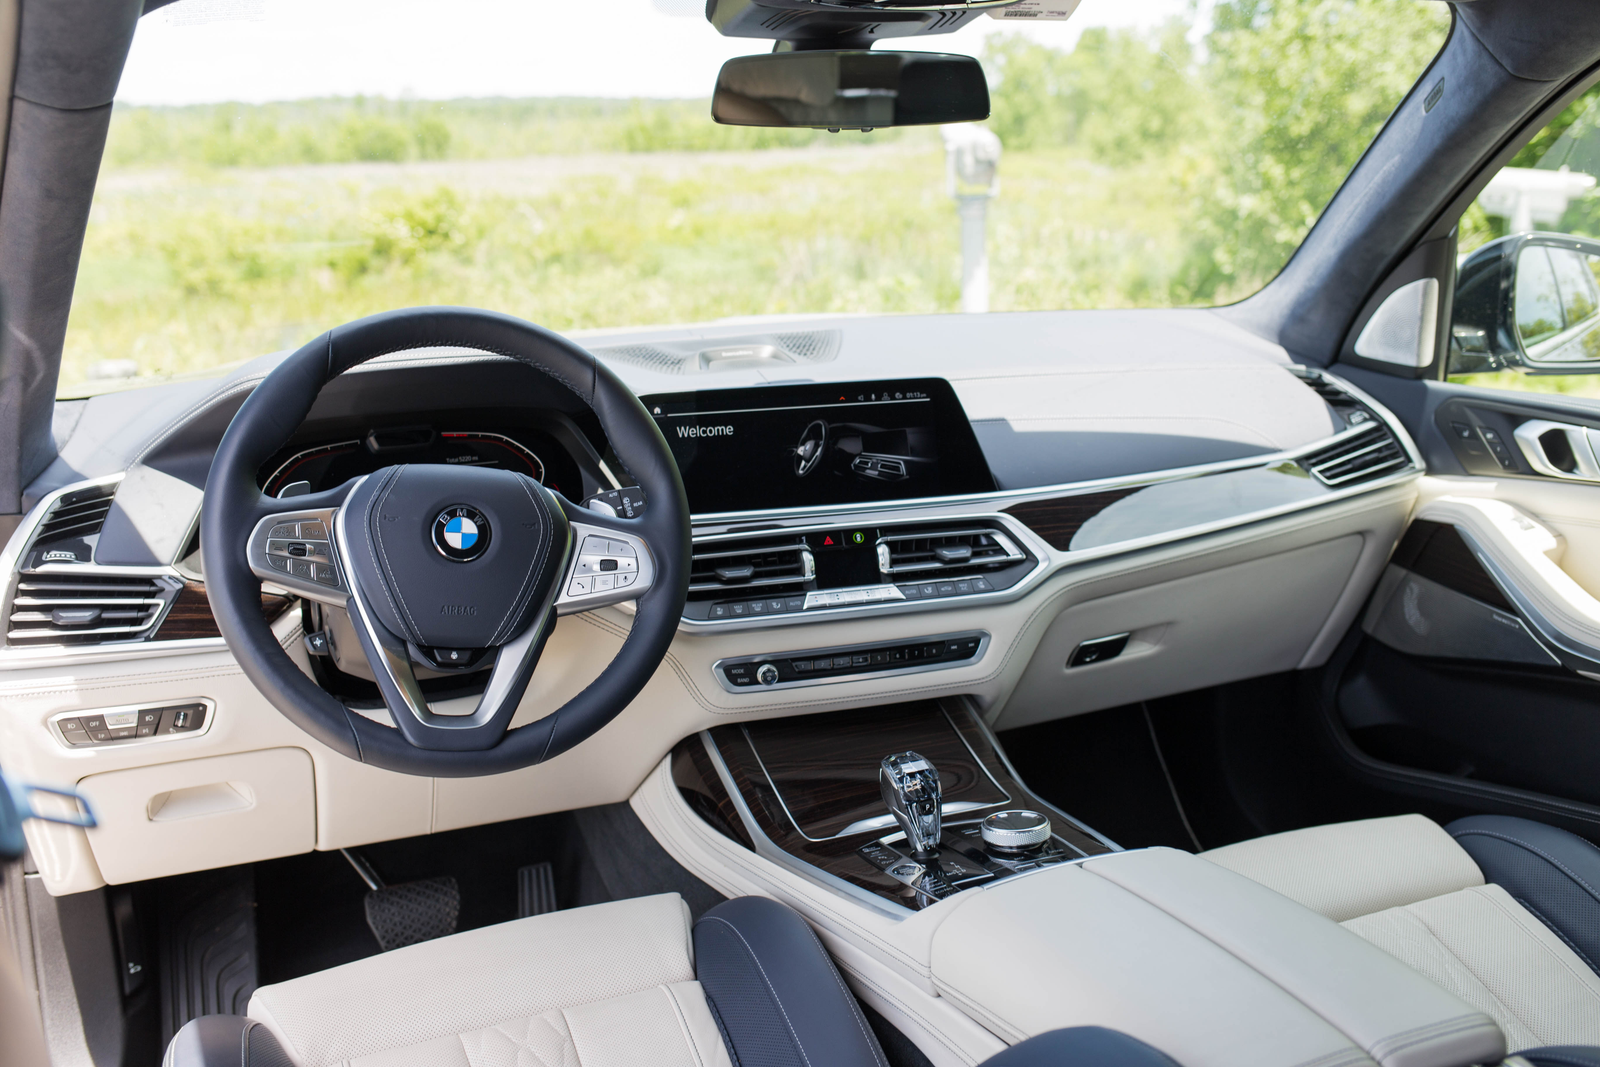 Illustration for article titled The 2019 BMW X7 Is Huge But So Great At High-Speed Cruising